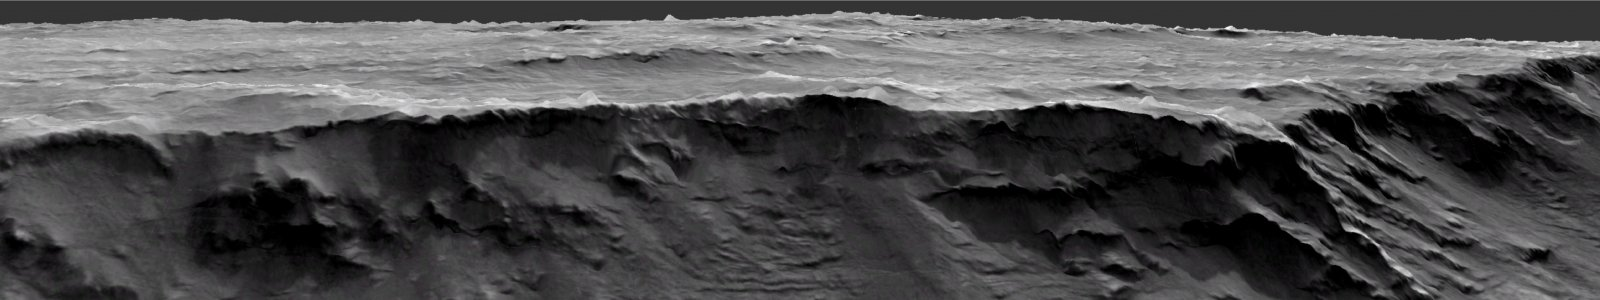 Vertical section at Izola Mensa in the northwestern rim of the Hellas Basin on Mars